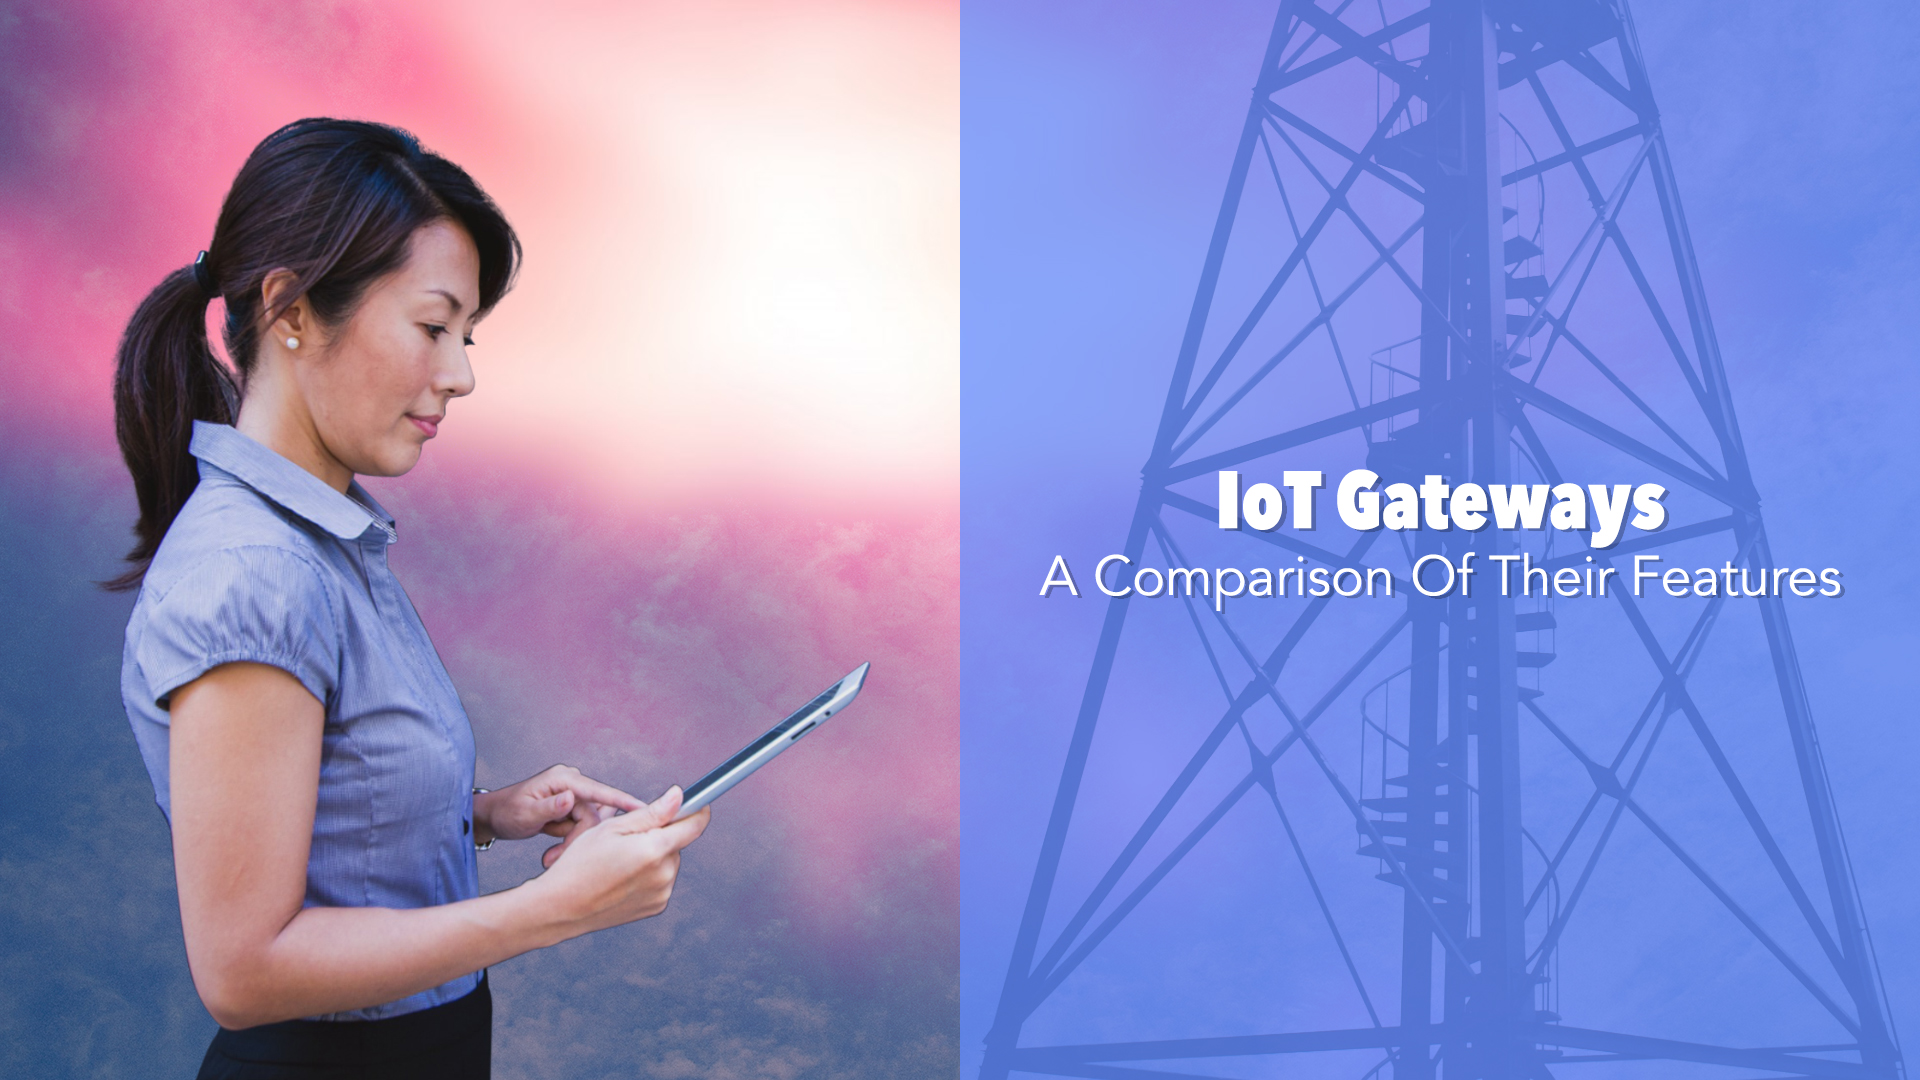 Comparison of IoT gateways